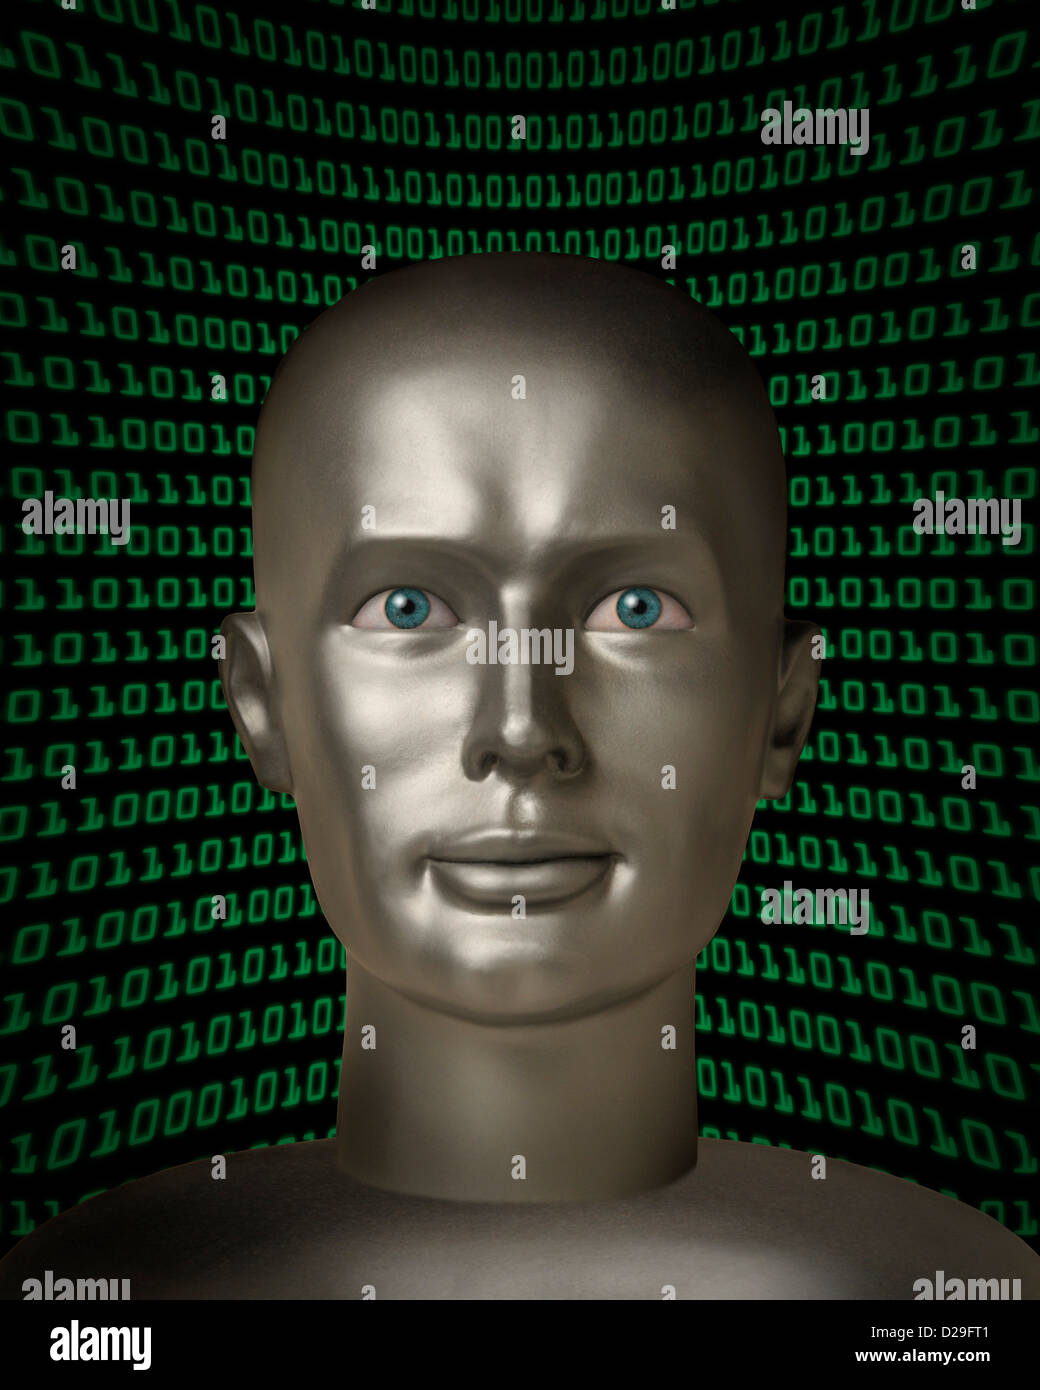 Robot android with human eyes in fr - Stock Image